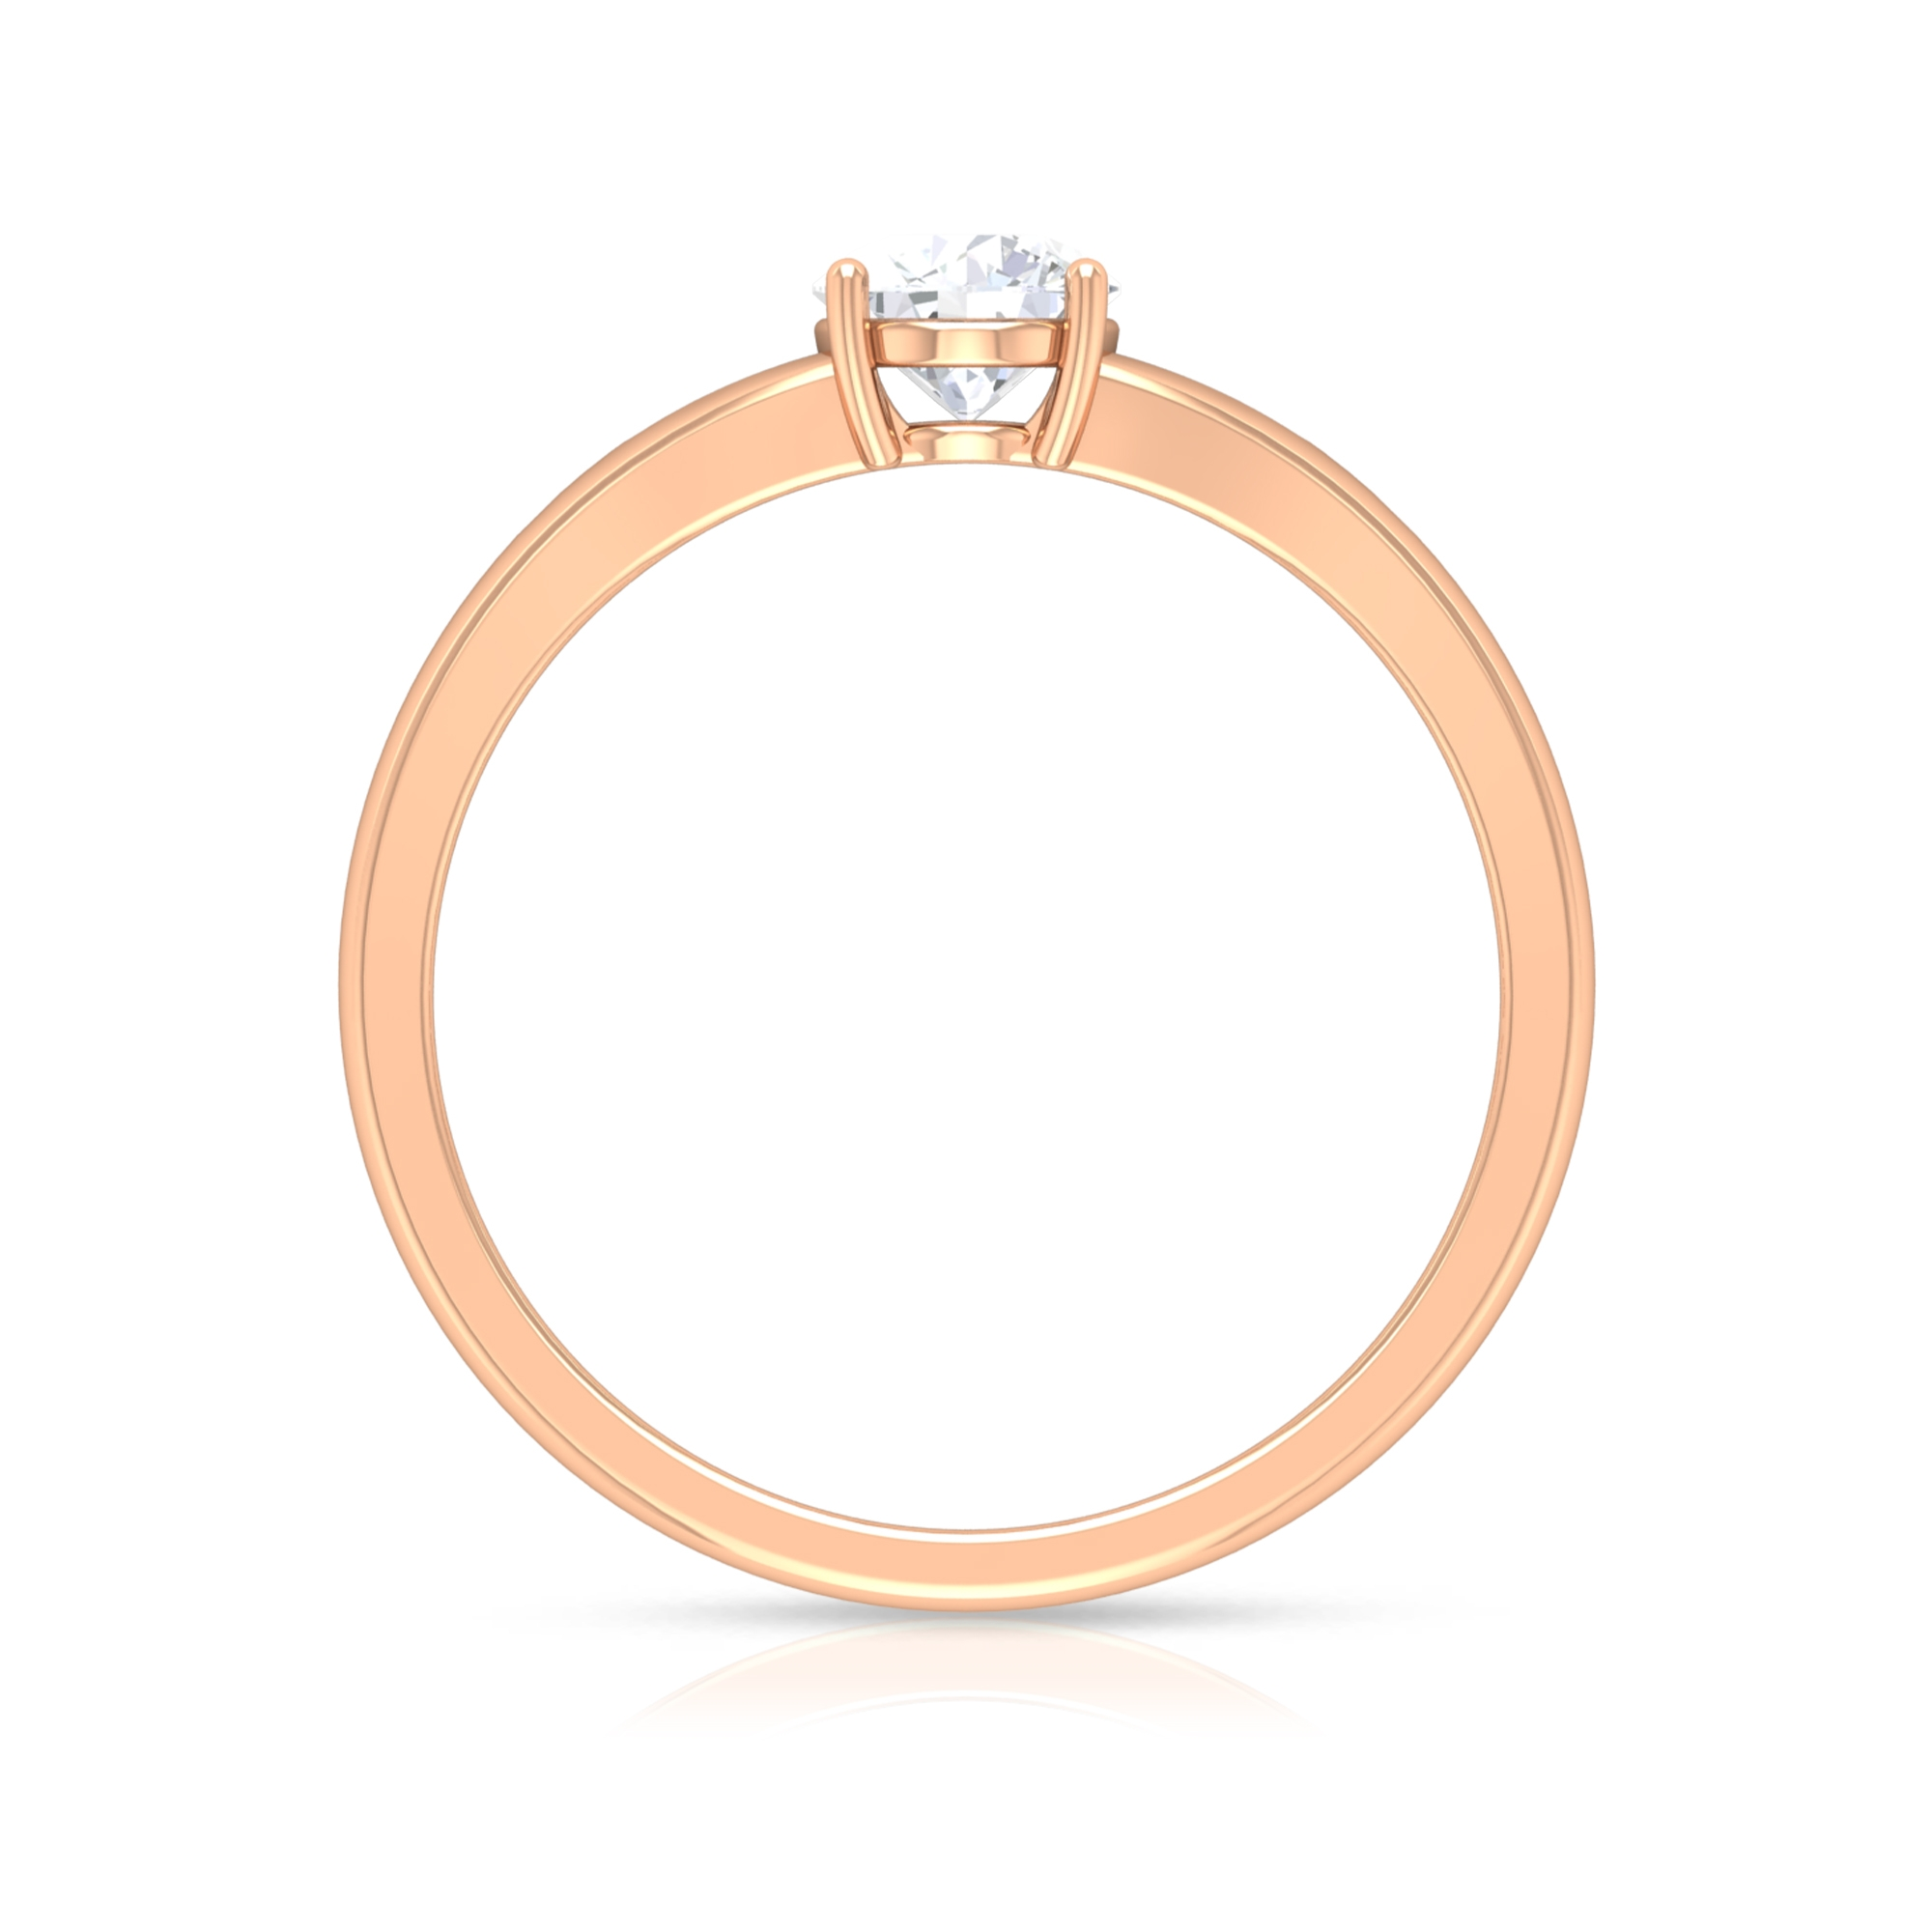 5 MM Round Cut Diamond Solitaire Ring in 4 Prong Setting with Split Shank